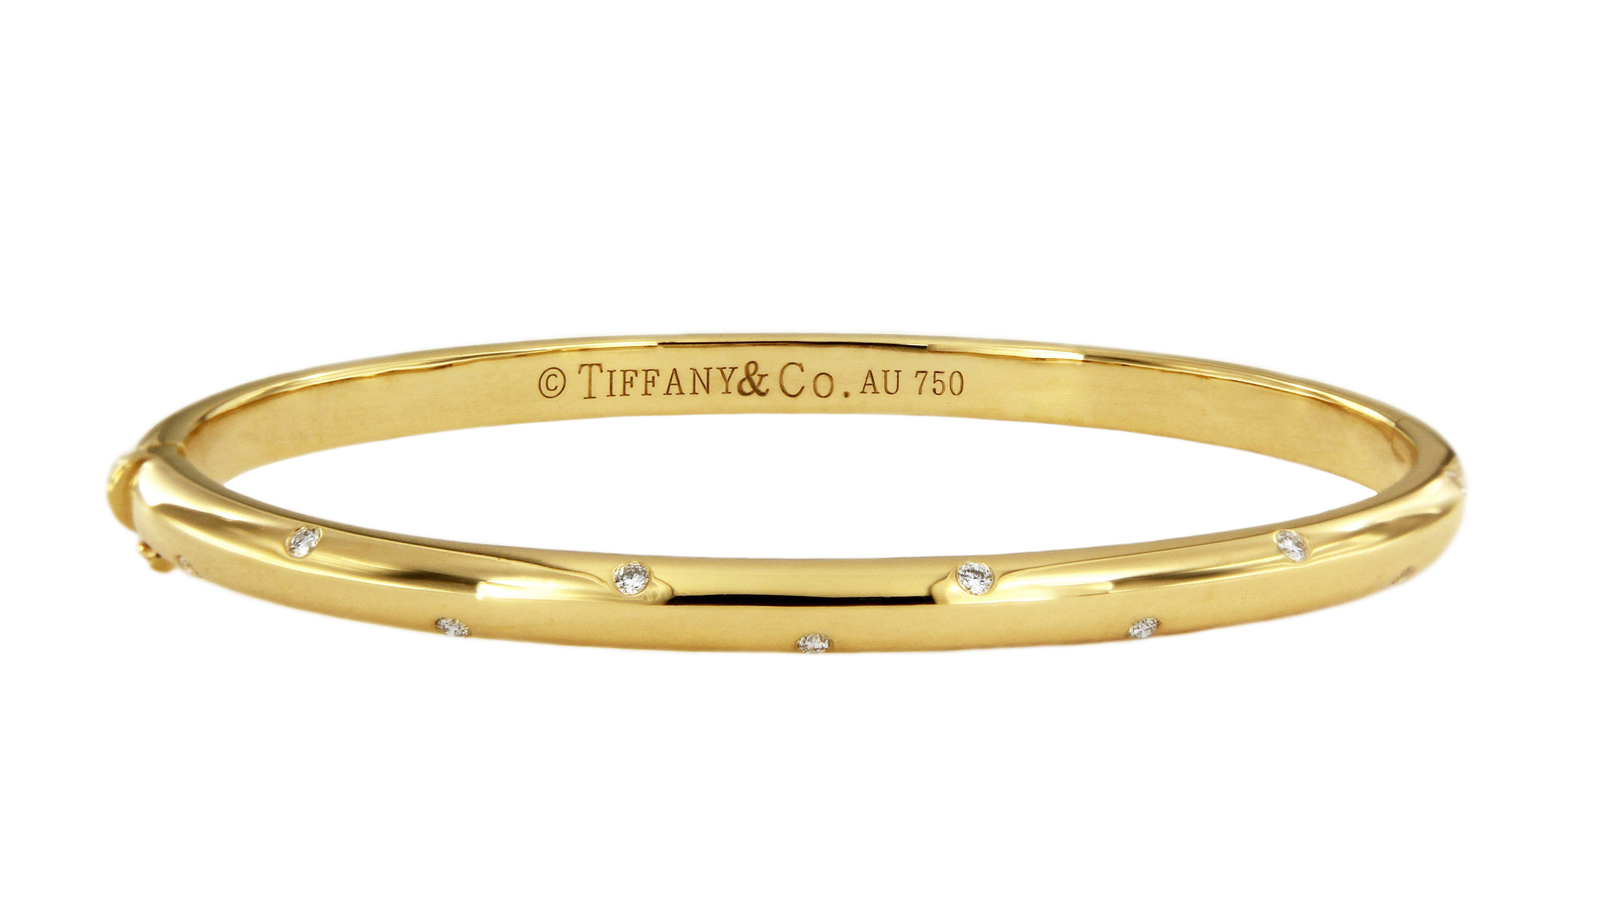 Tiffany&Co.18k Yellow Gold Diamond Etoile Bangle Bracelet_Medium size  - $2,850.00